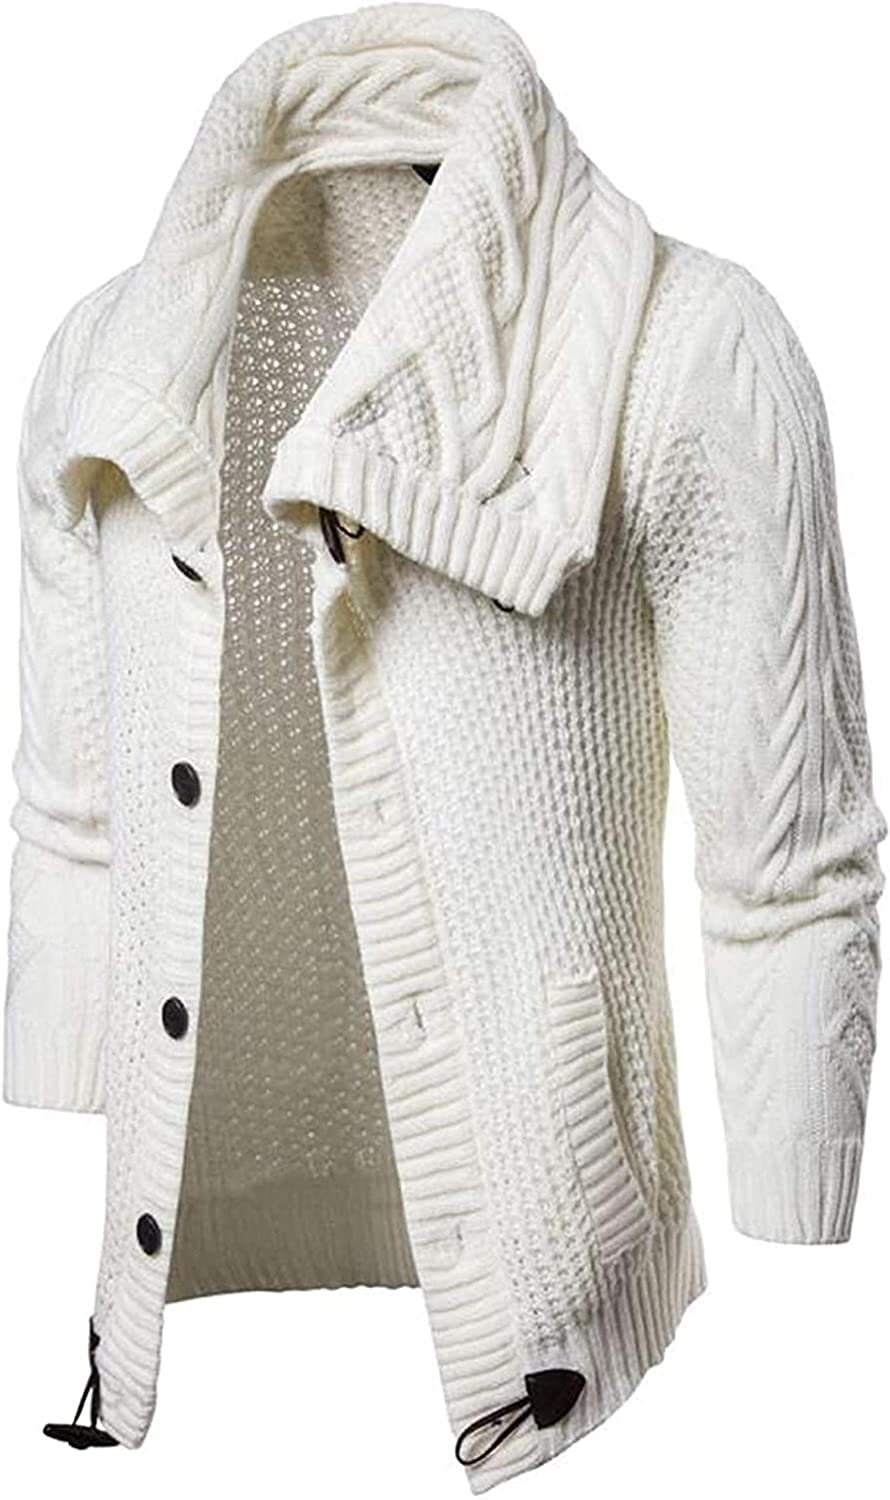 Autumn Sweater Cardigan Men Casual Slim Sweaters Male Warm Thick Horns Buckle Turtleneck Sweater